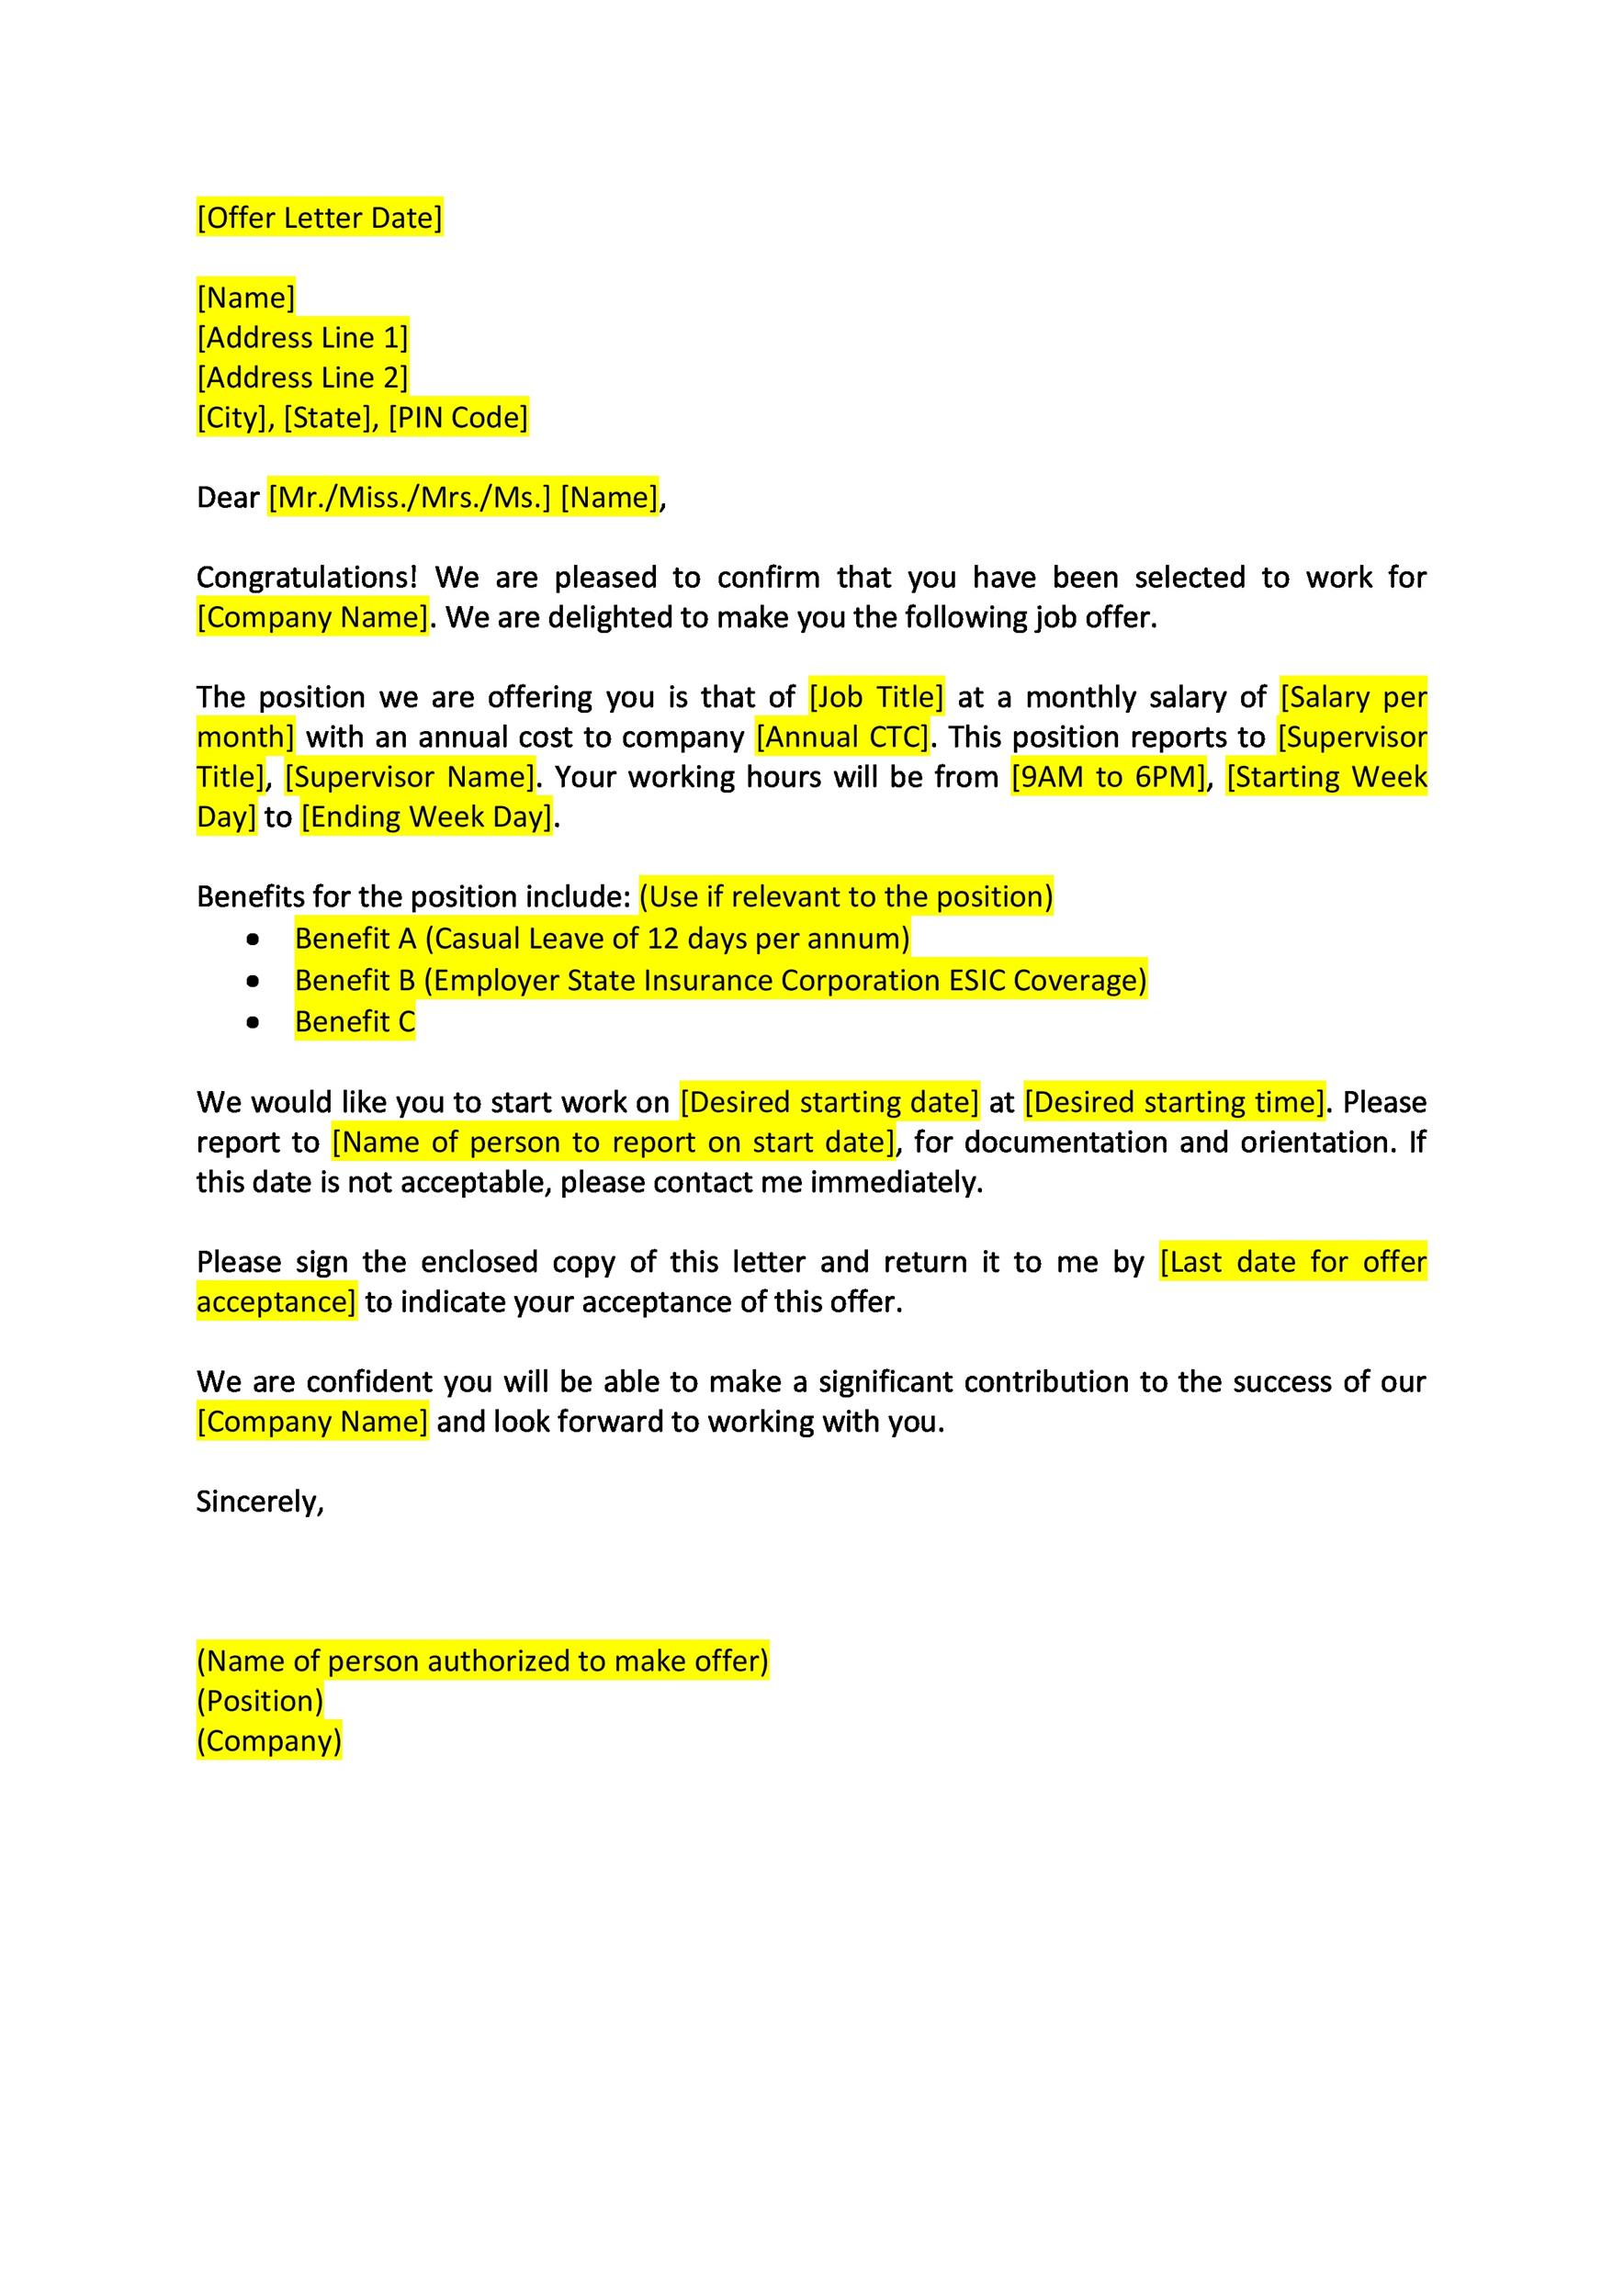 44 fantastic offer letter templates employment counter offer job offer letter 42